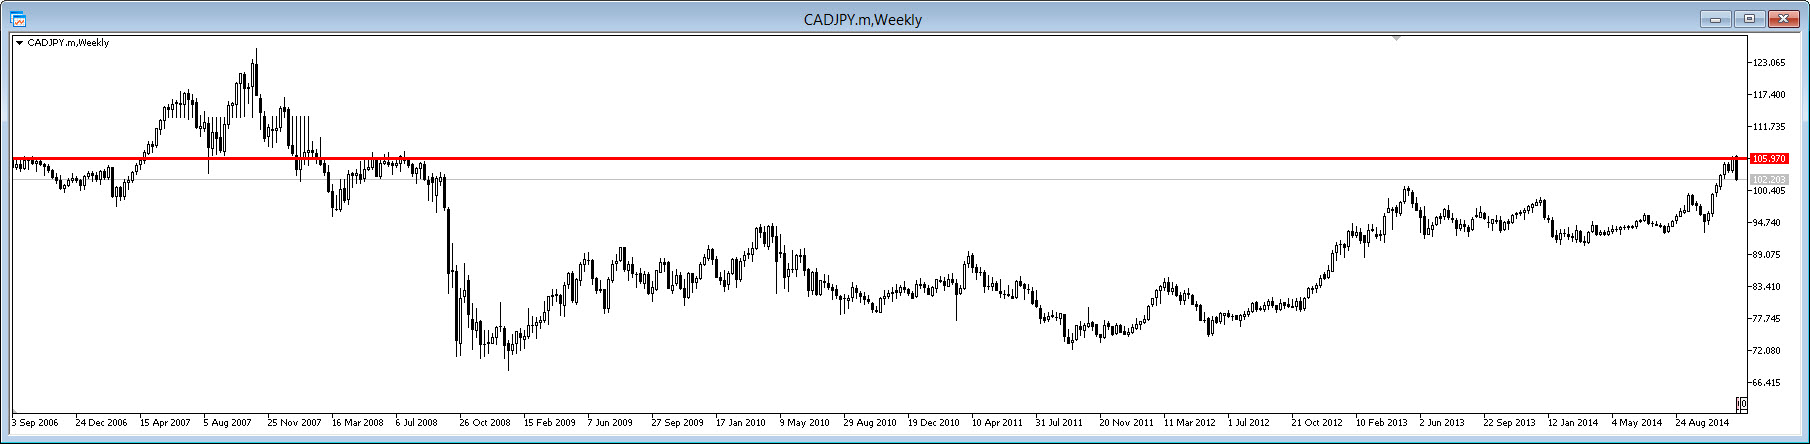 Forex Counter Trend Trading With Price Action Cadjpy-w